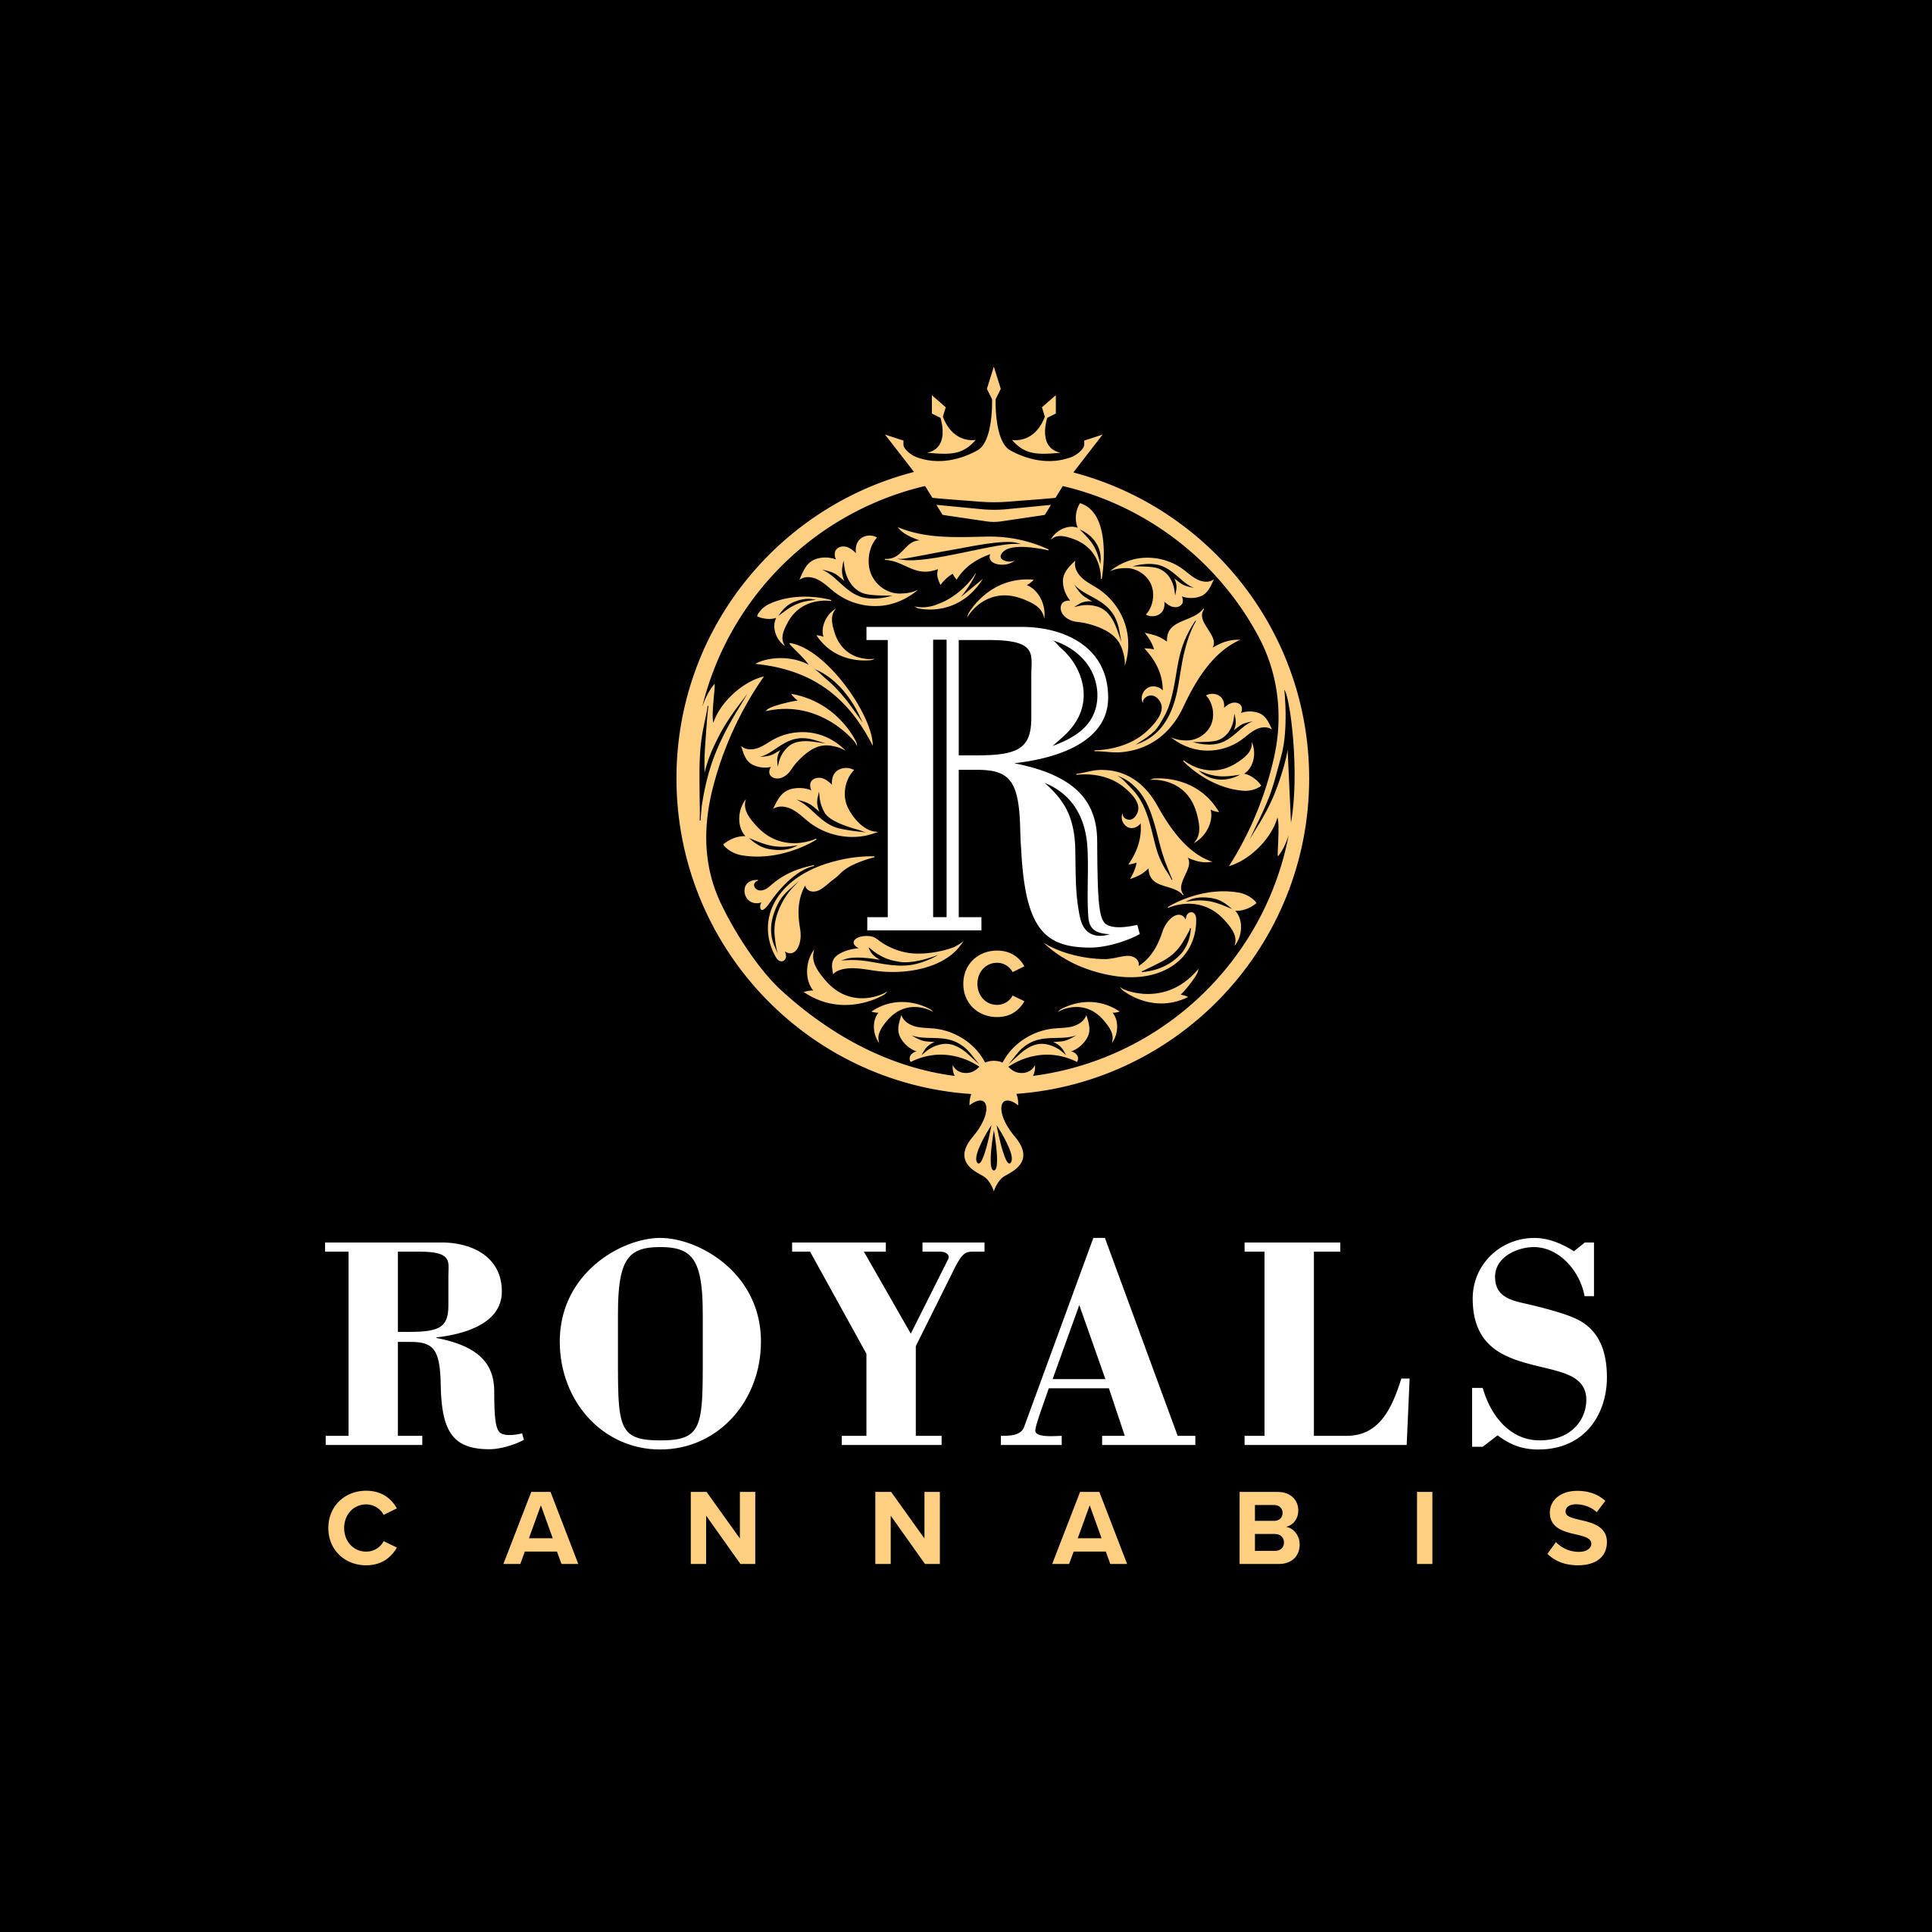 Royals Cannabis